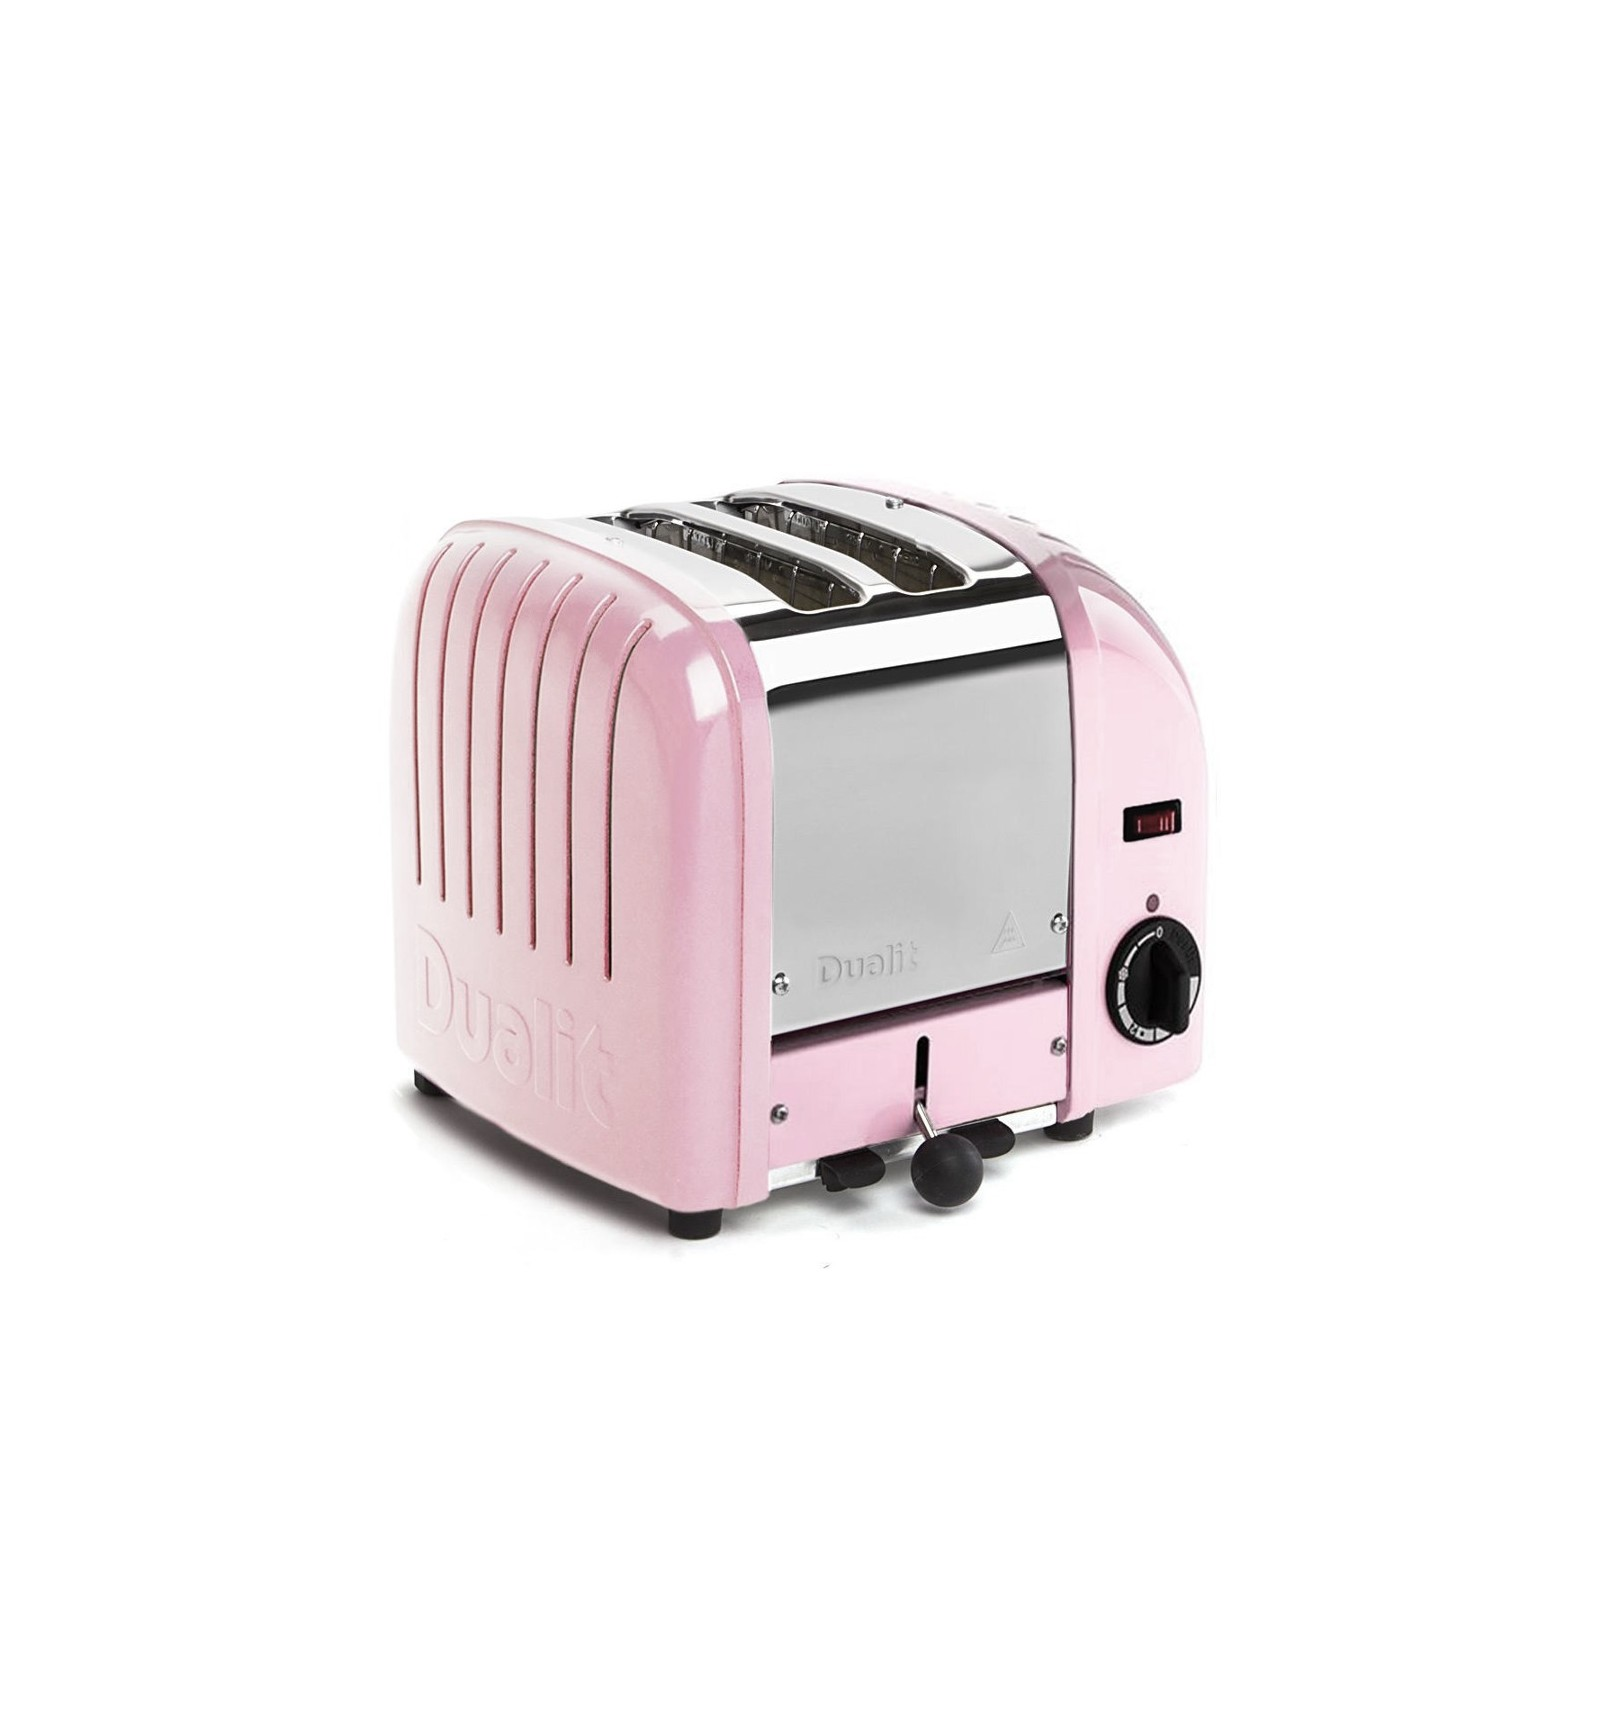 look appliances zm myer kitchen home toasters slice breville online lift shop toaster pro mystore